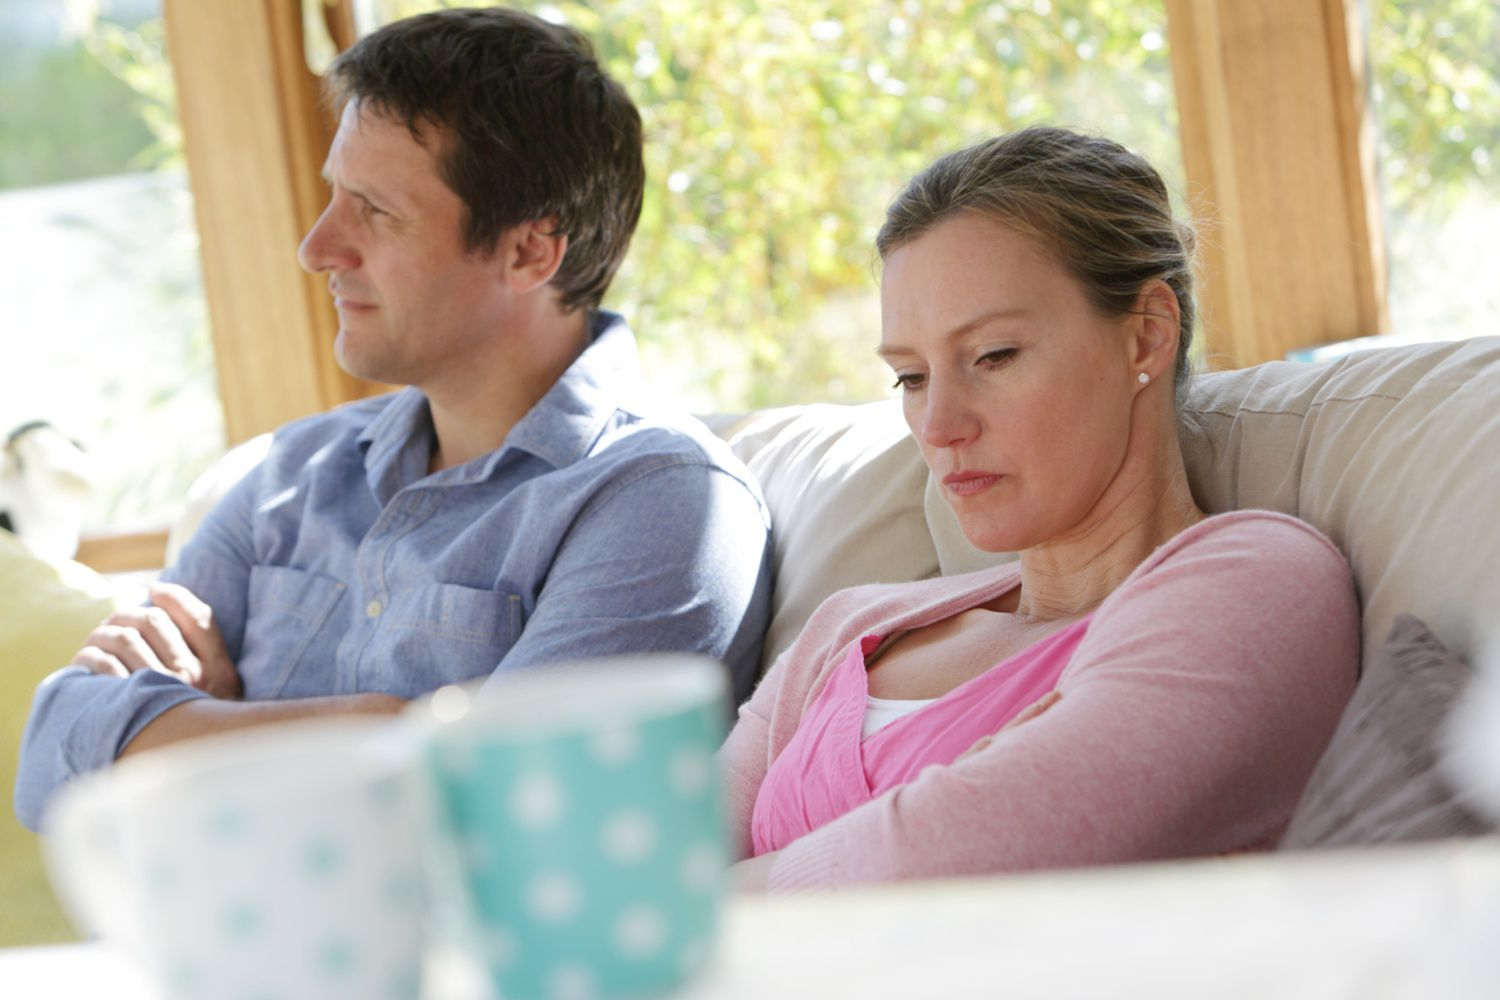 Couple looking away from each other with arms folded